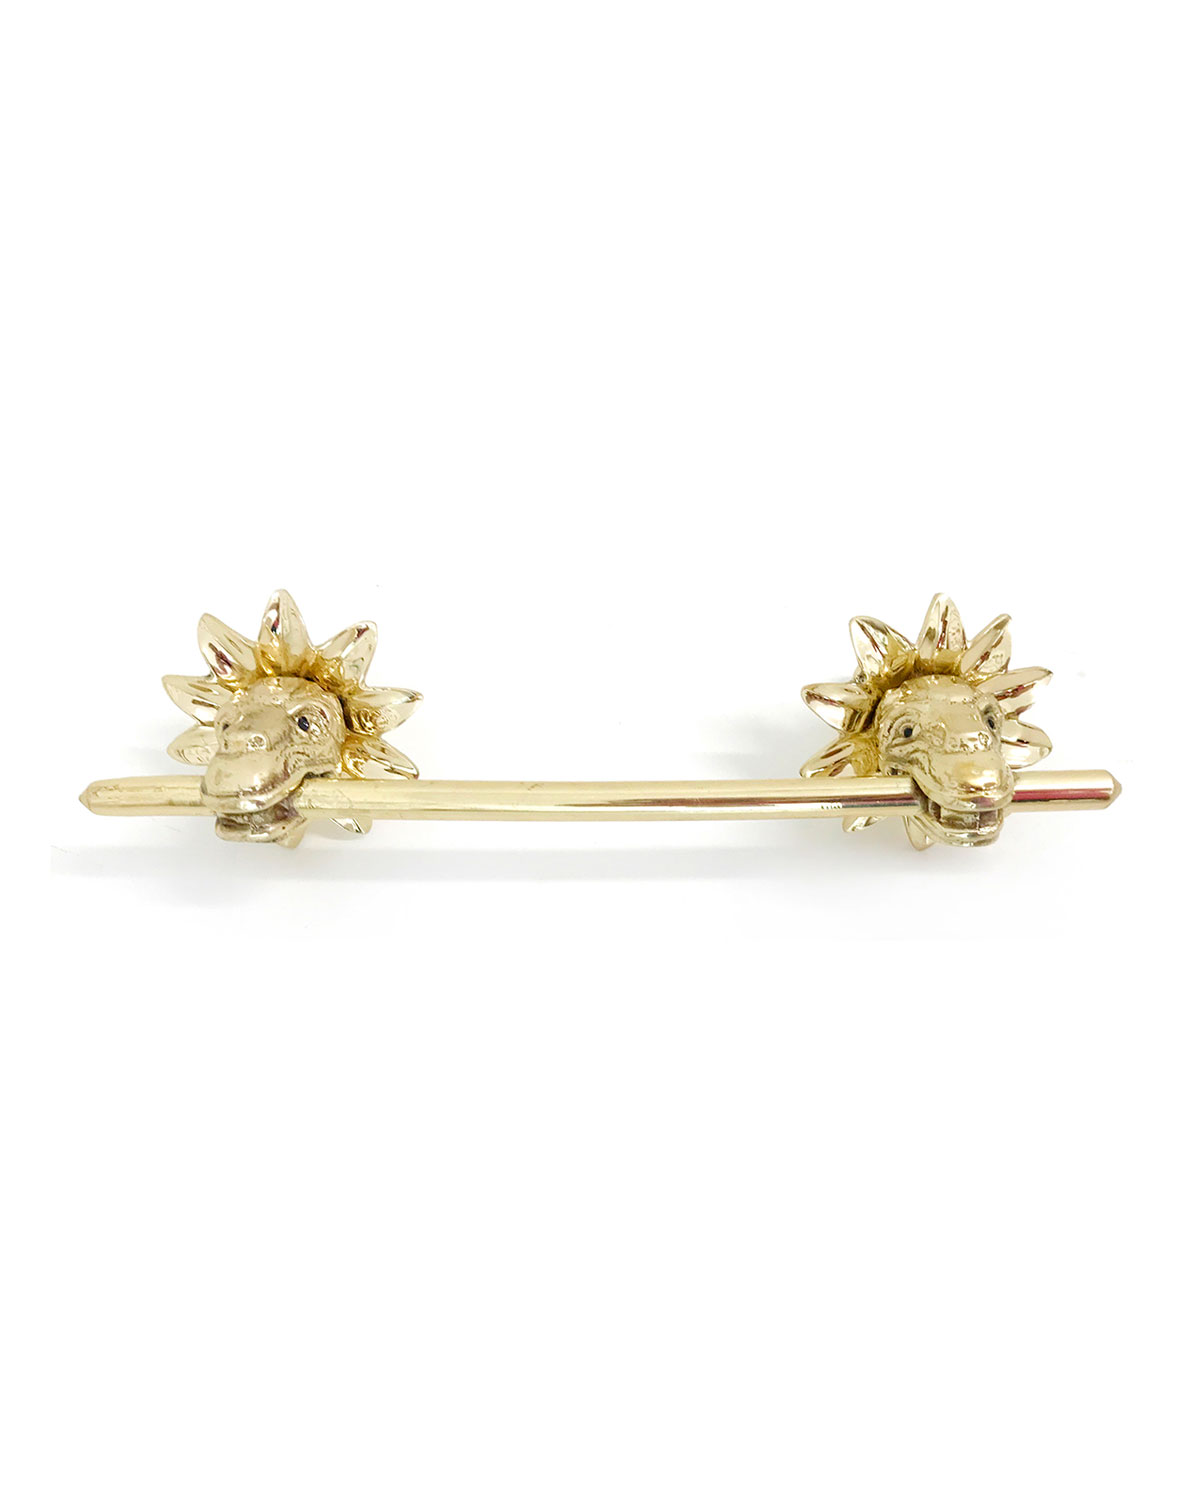 Addison Weeks Michelle Nussbaumer Kukulkan Bar Drawer/cabinet Pull With Backplate In Gold